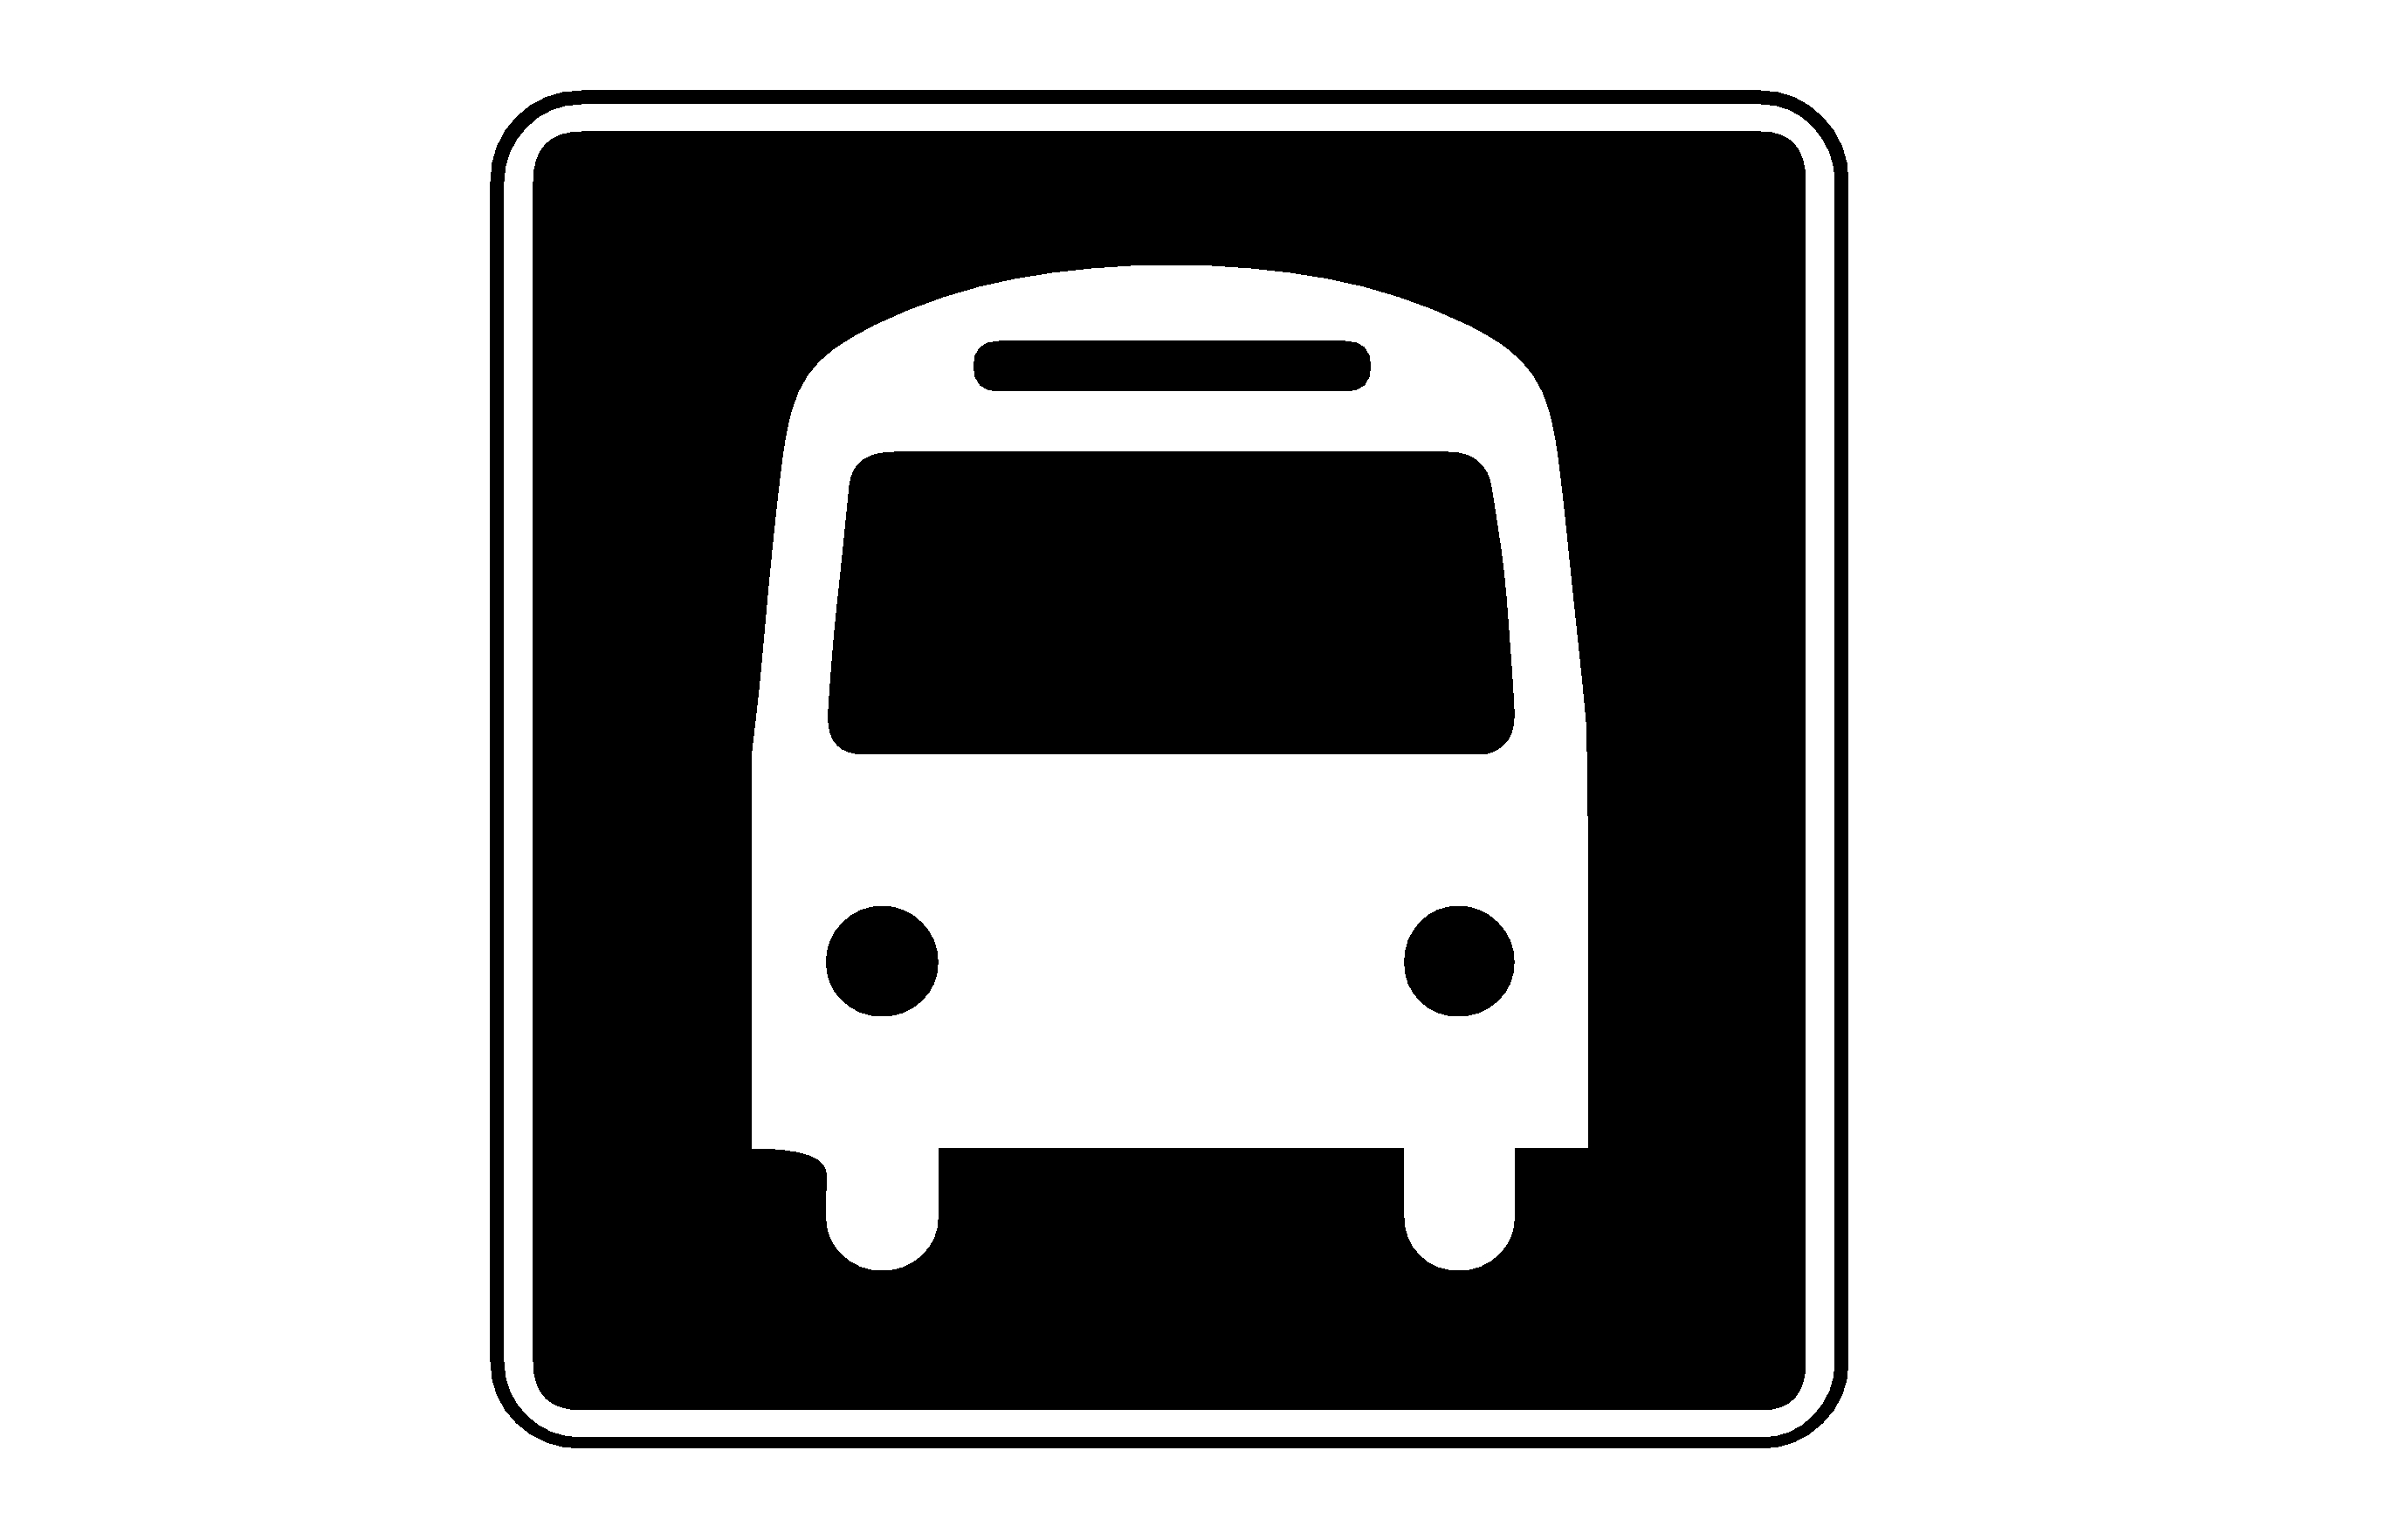 12 Black Bus Icon Free Images